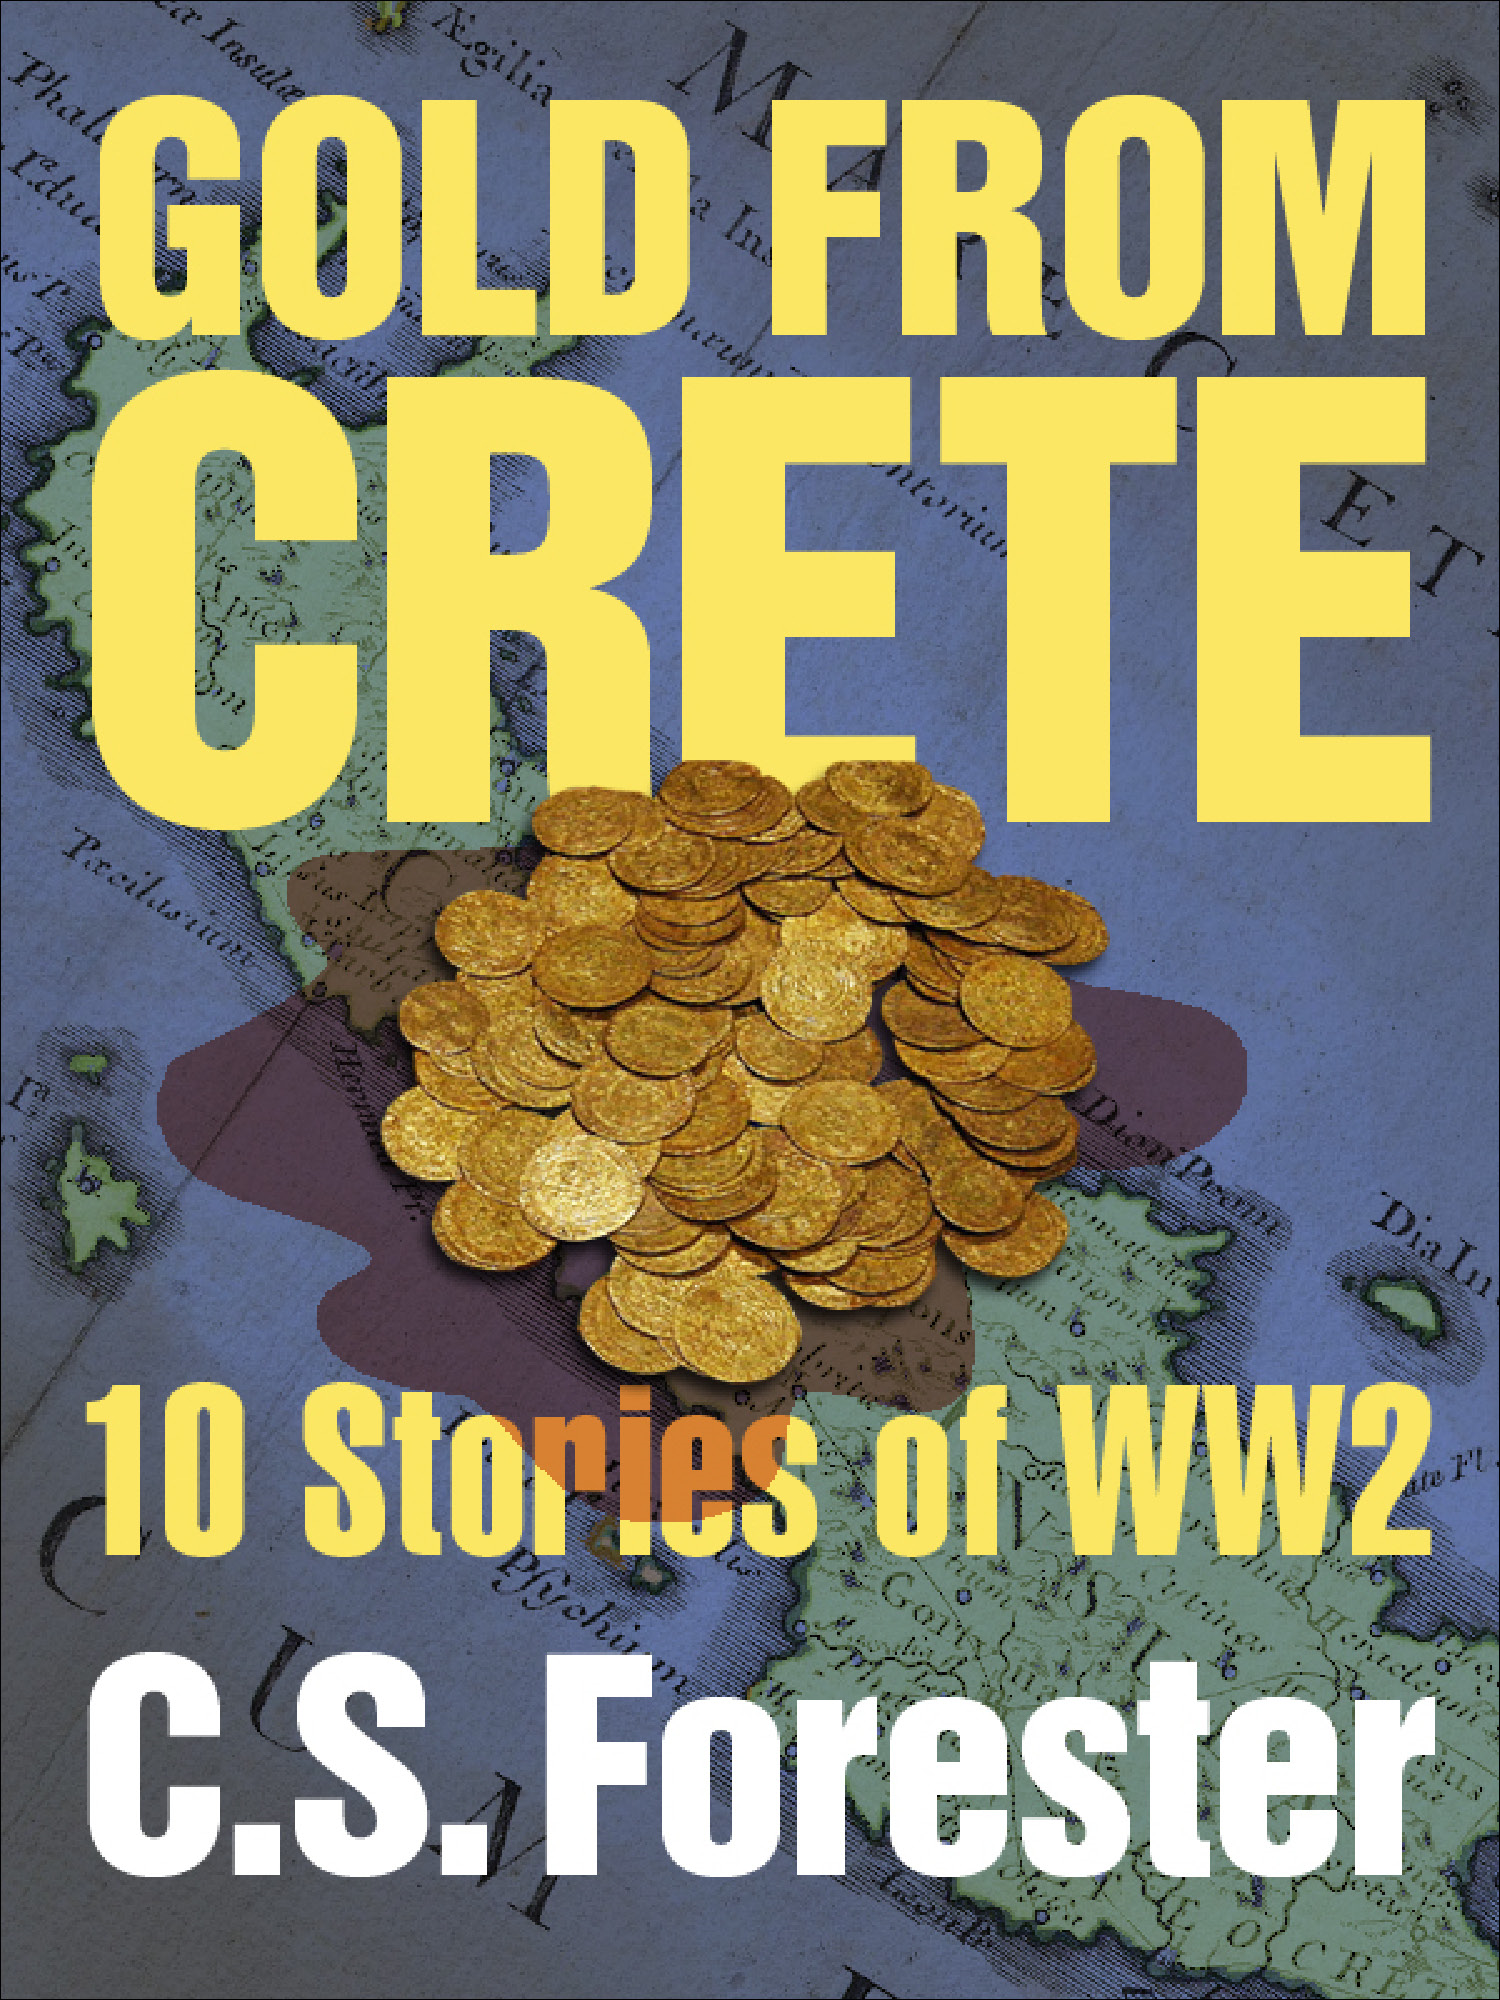 C. S. Forester - Gold From Crete